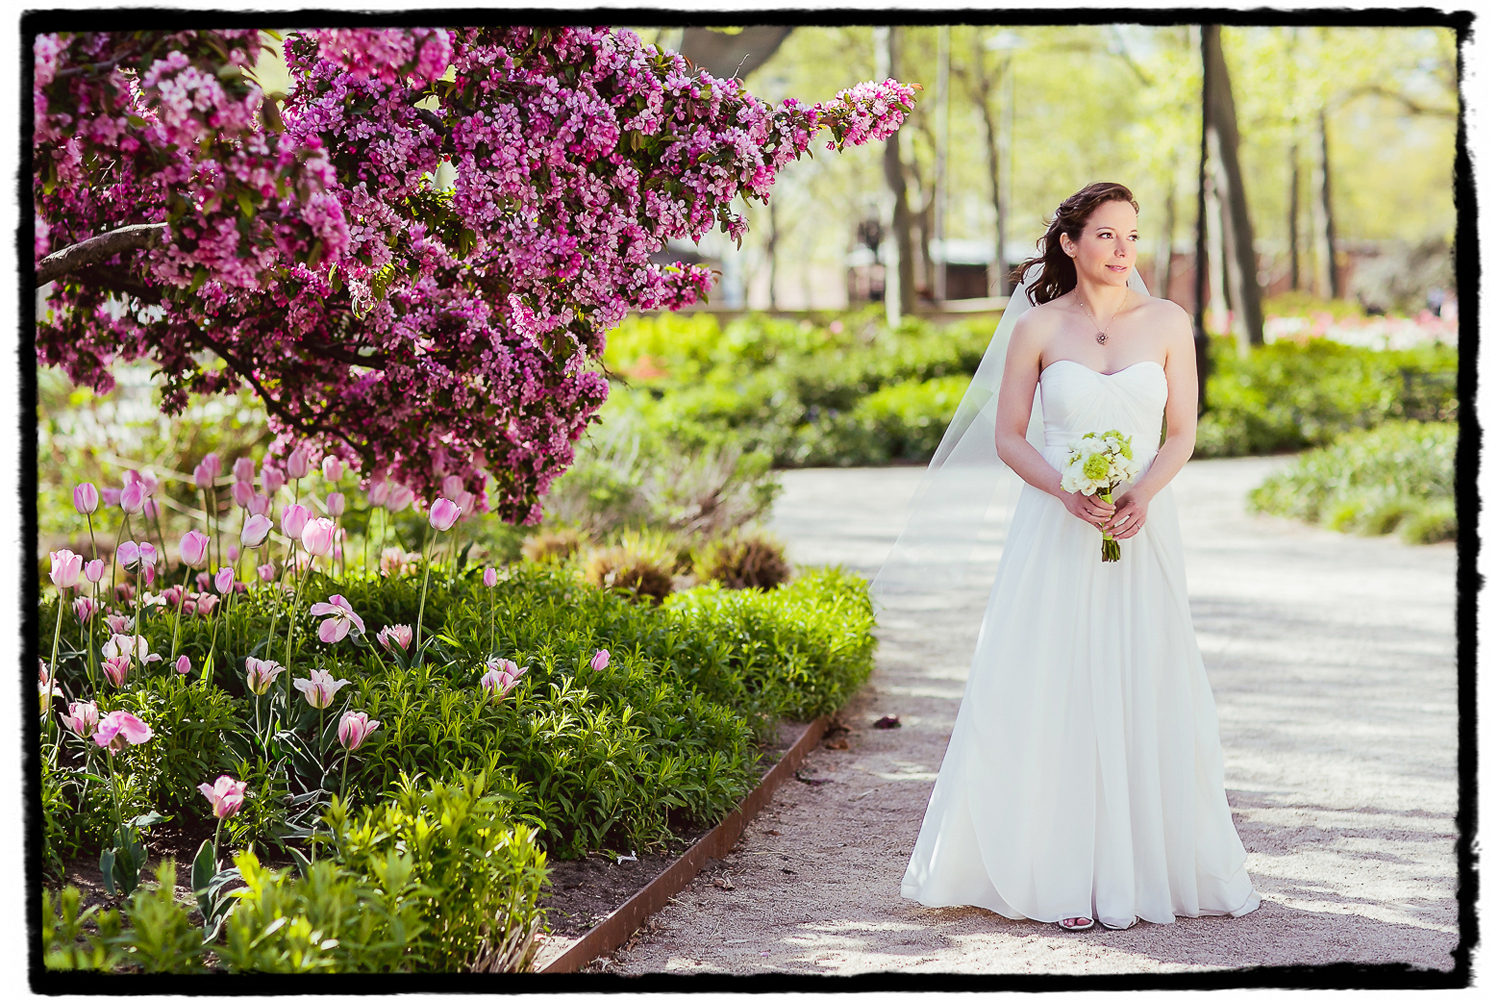 Julie looks lovely as she waits for a first look with her groom at Battery Gardens in Manhattan.